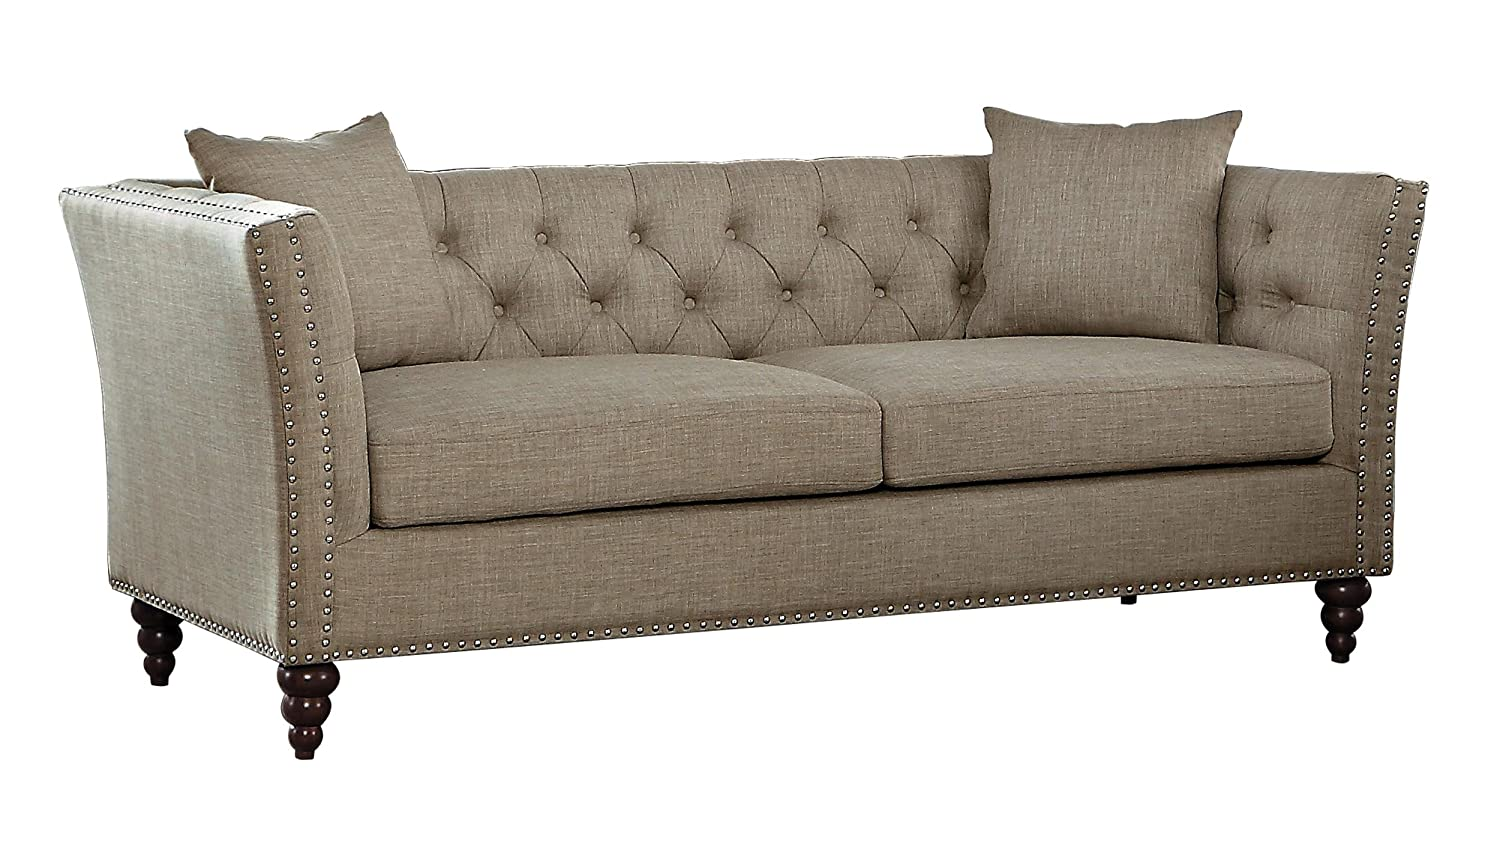 Amazon.com: Homelegance Marceau Tuxedo Style Sofa with Flared Arm and  Double Nailhead Accent, Button Tufted with Two Toss Pillows, Tan: Kitchen &  Dining